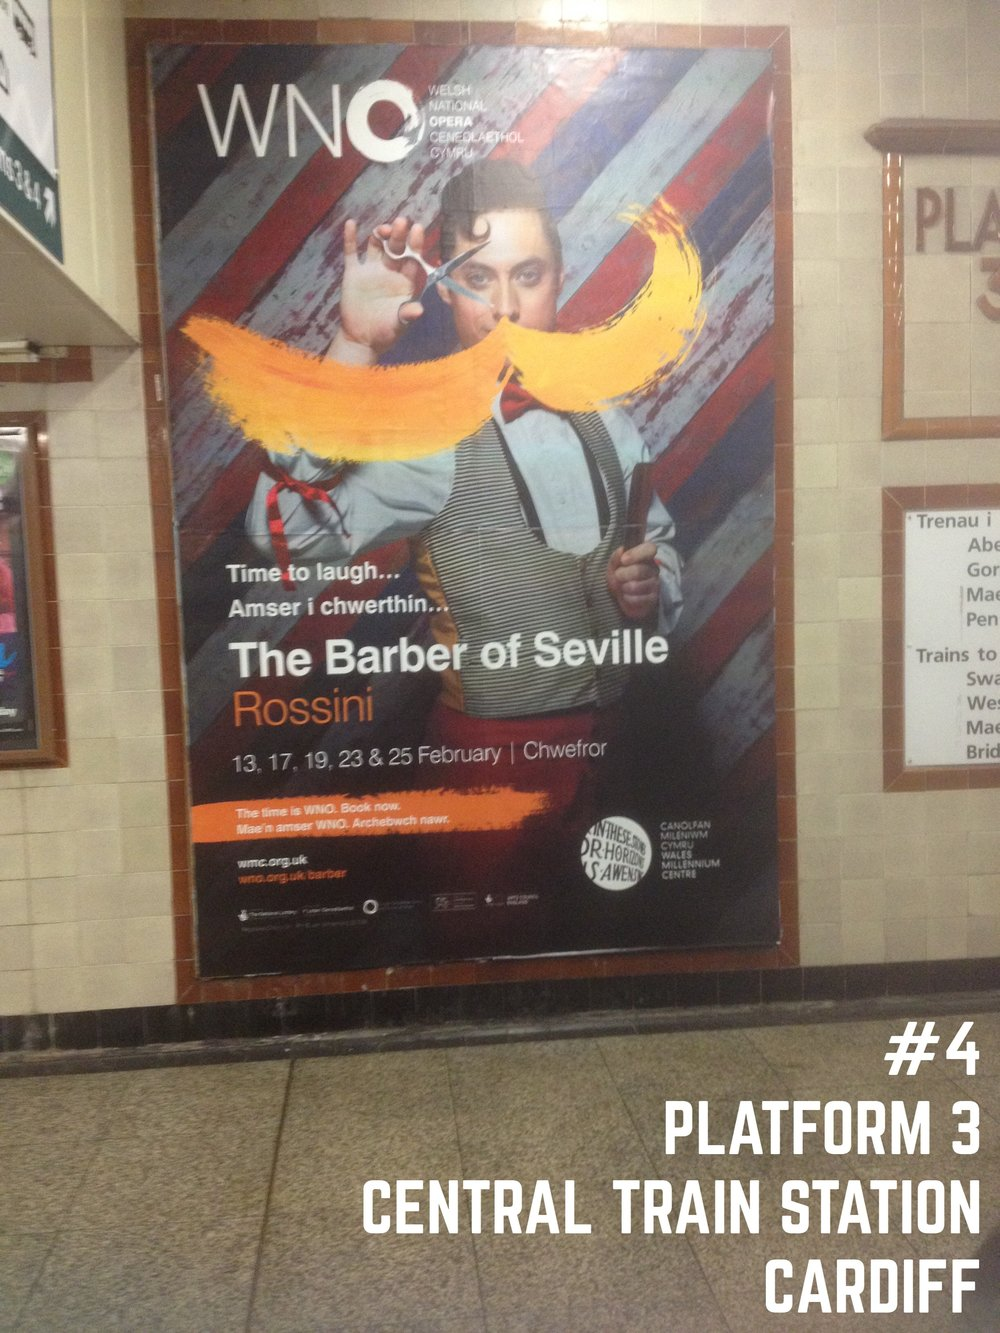 Barber of Seville poster spotted by platform 3, Cardiff Central train station